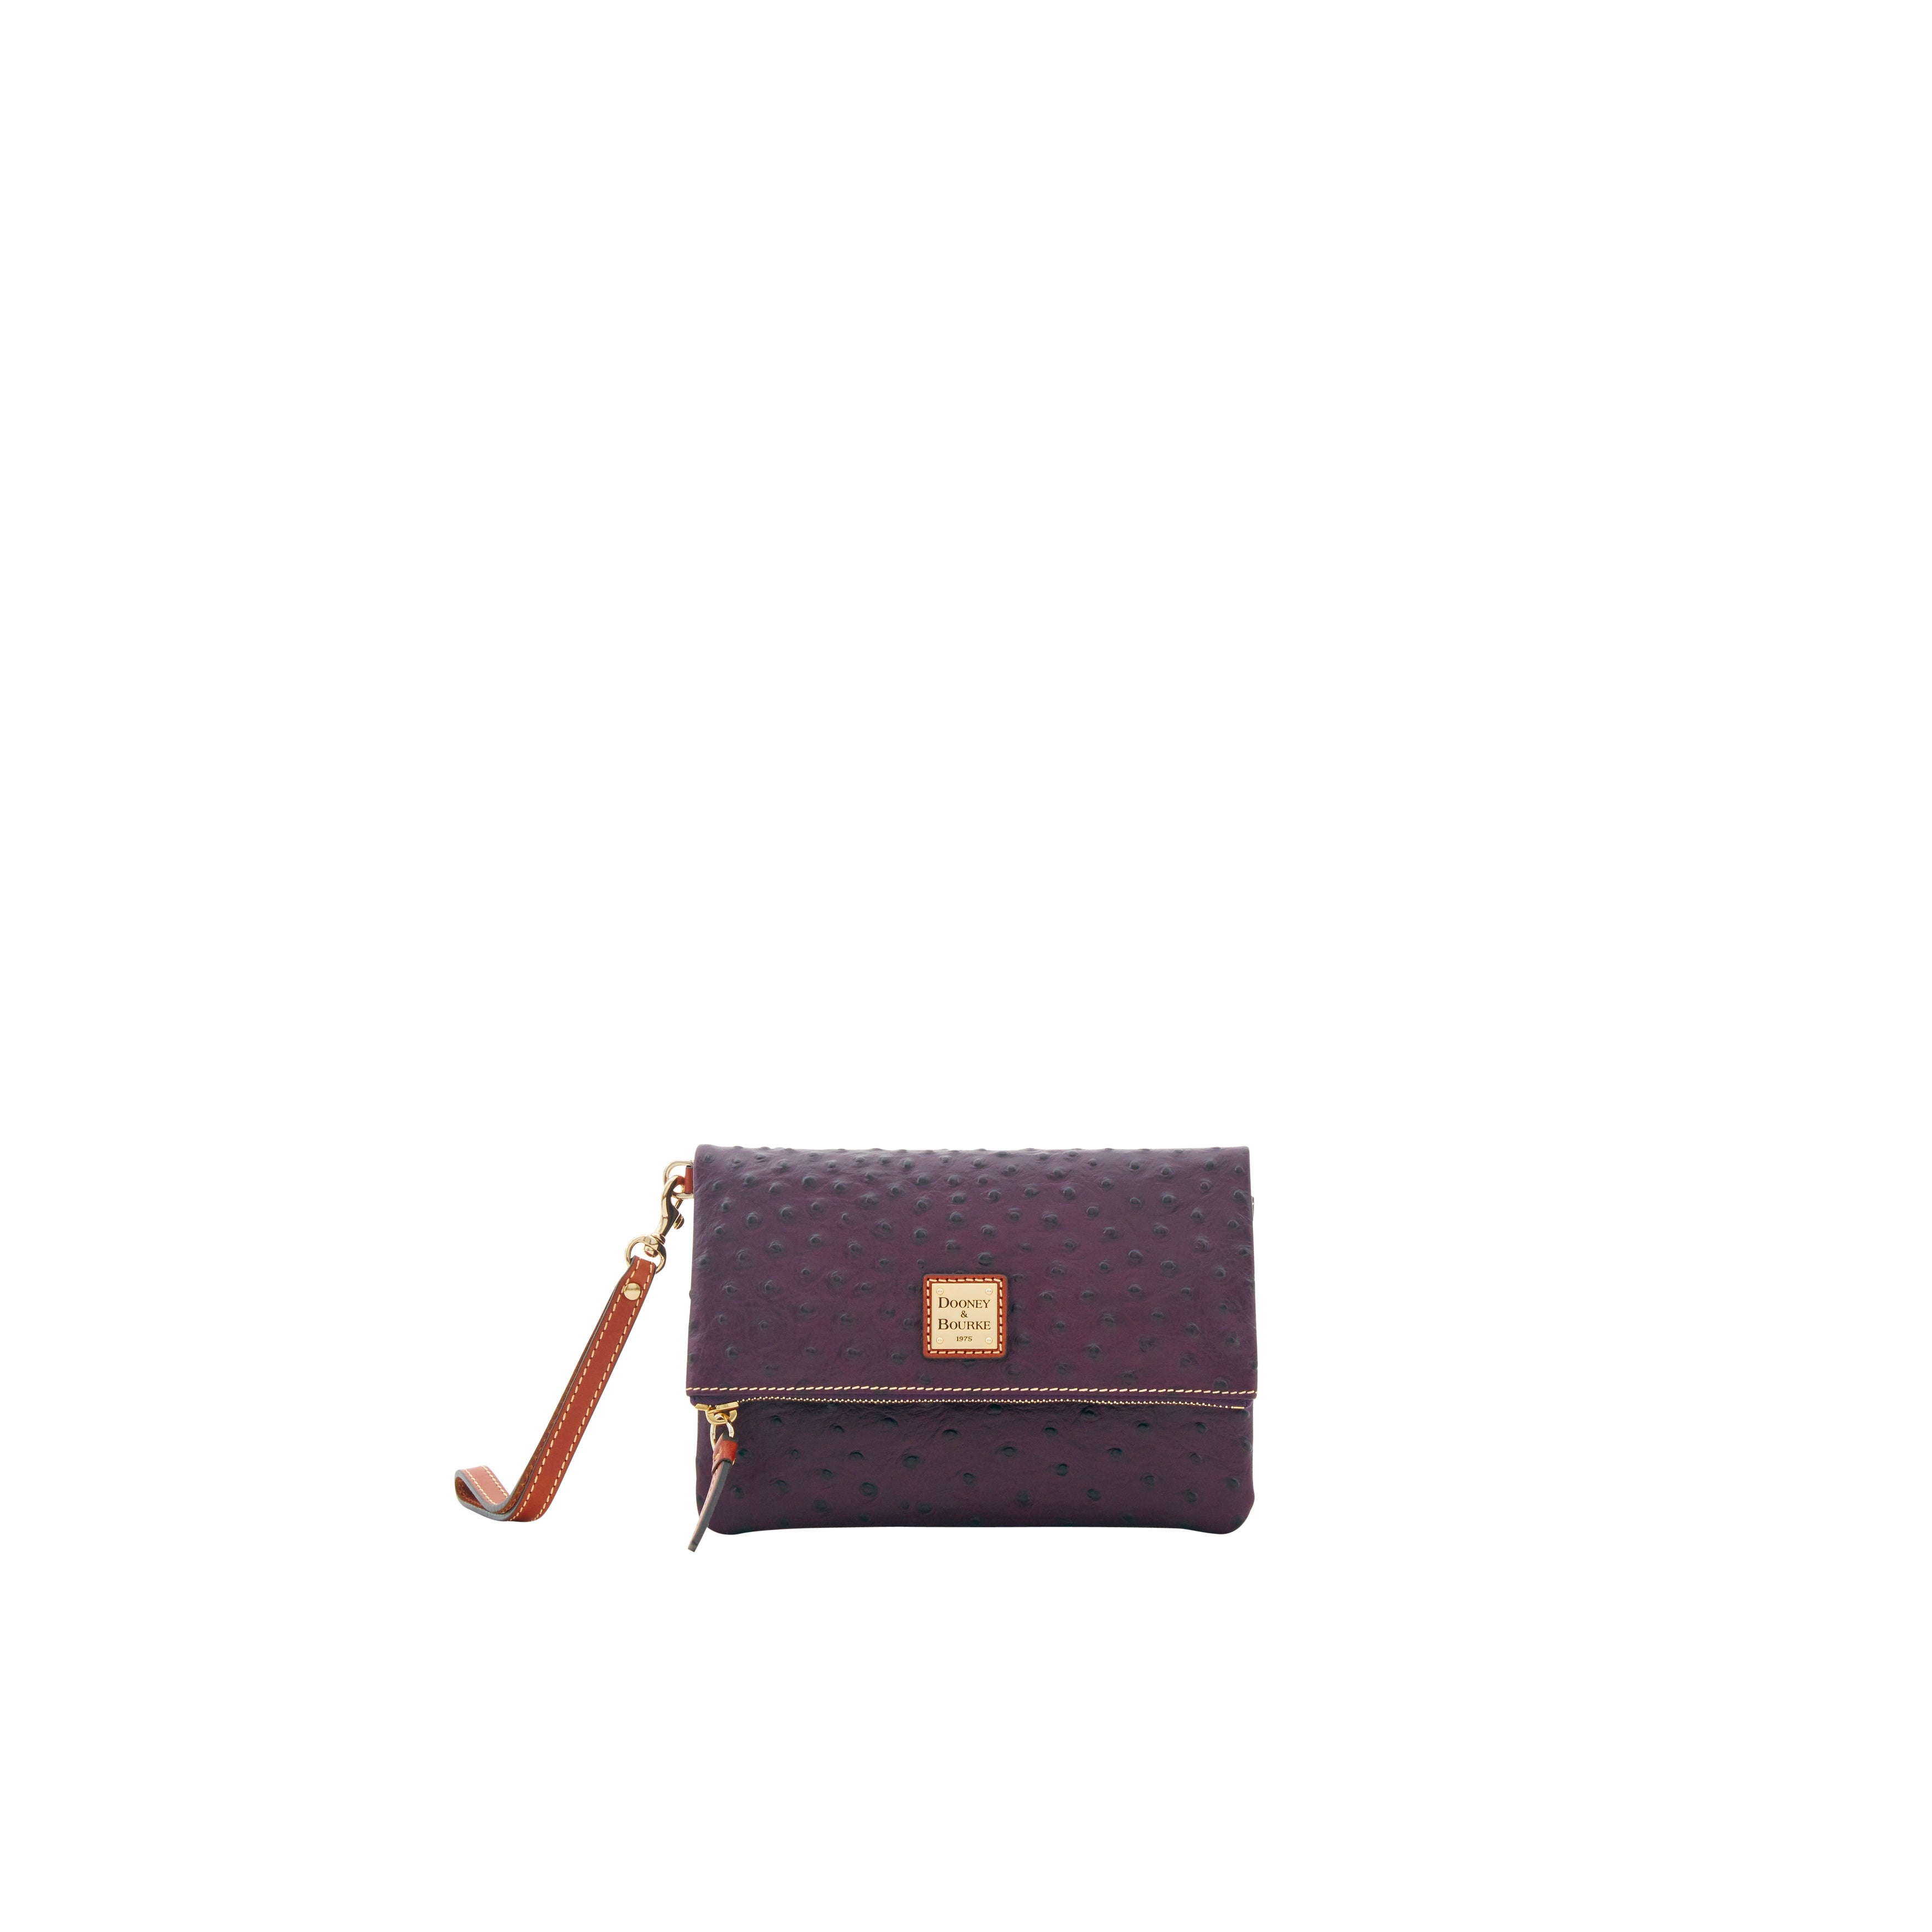 abd9976104c4 Shop Dooney & Bourke Ostrich Embossed Leather Foldover Wallet (Introduced  by Dooney & Bourke at $118 in Aug 2018) - Free Shipping Today - Overstock -  ...